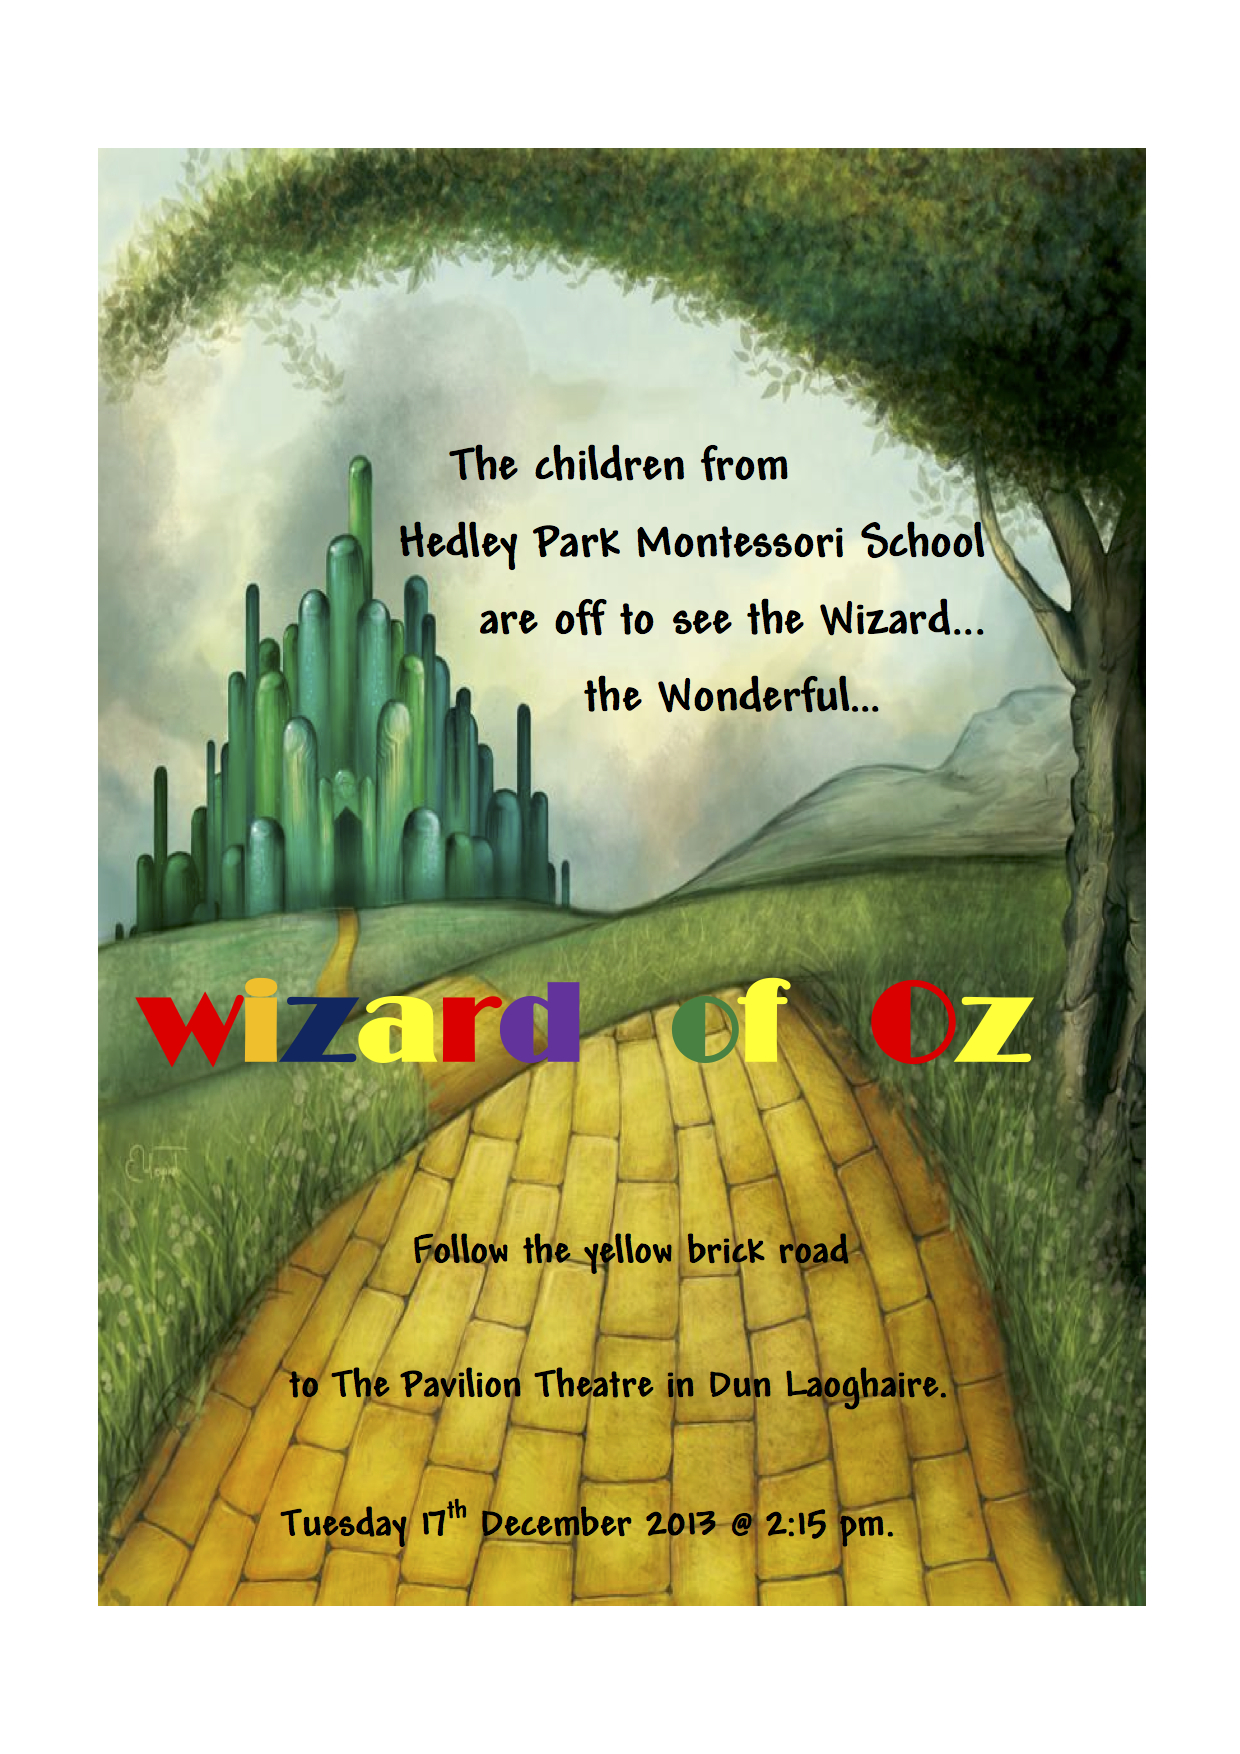 We cordially invite you to follow the yellow brick road.